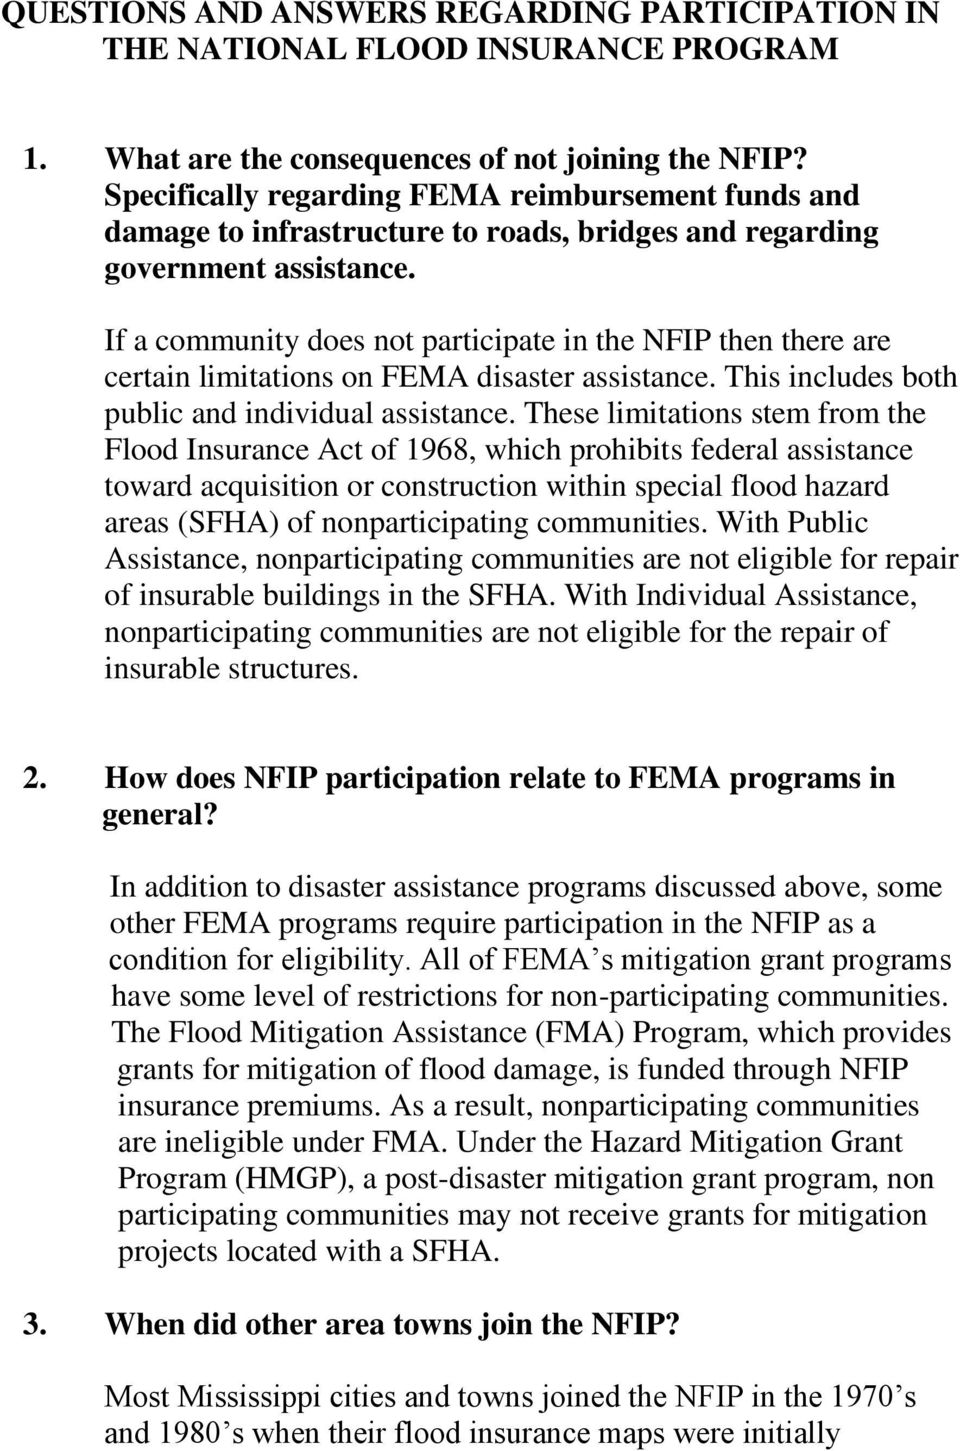 If a community does not participate in the NFIP then there are certain limitations on FEMA disaster assistance. This includes both public and individual assistance.